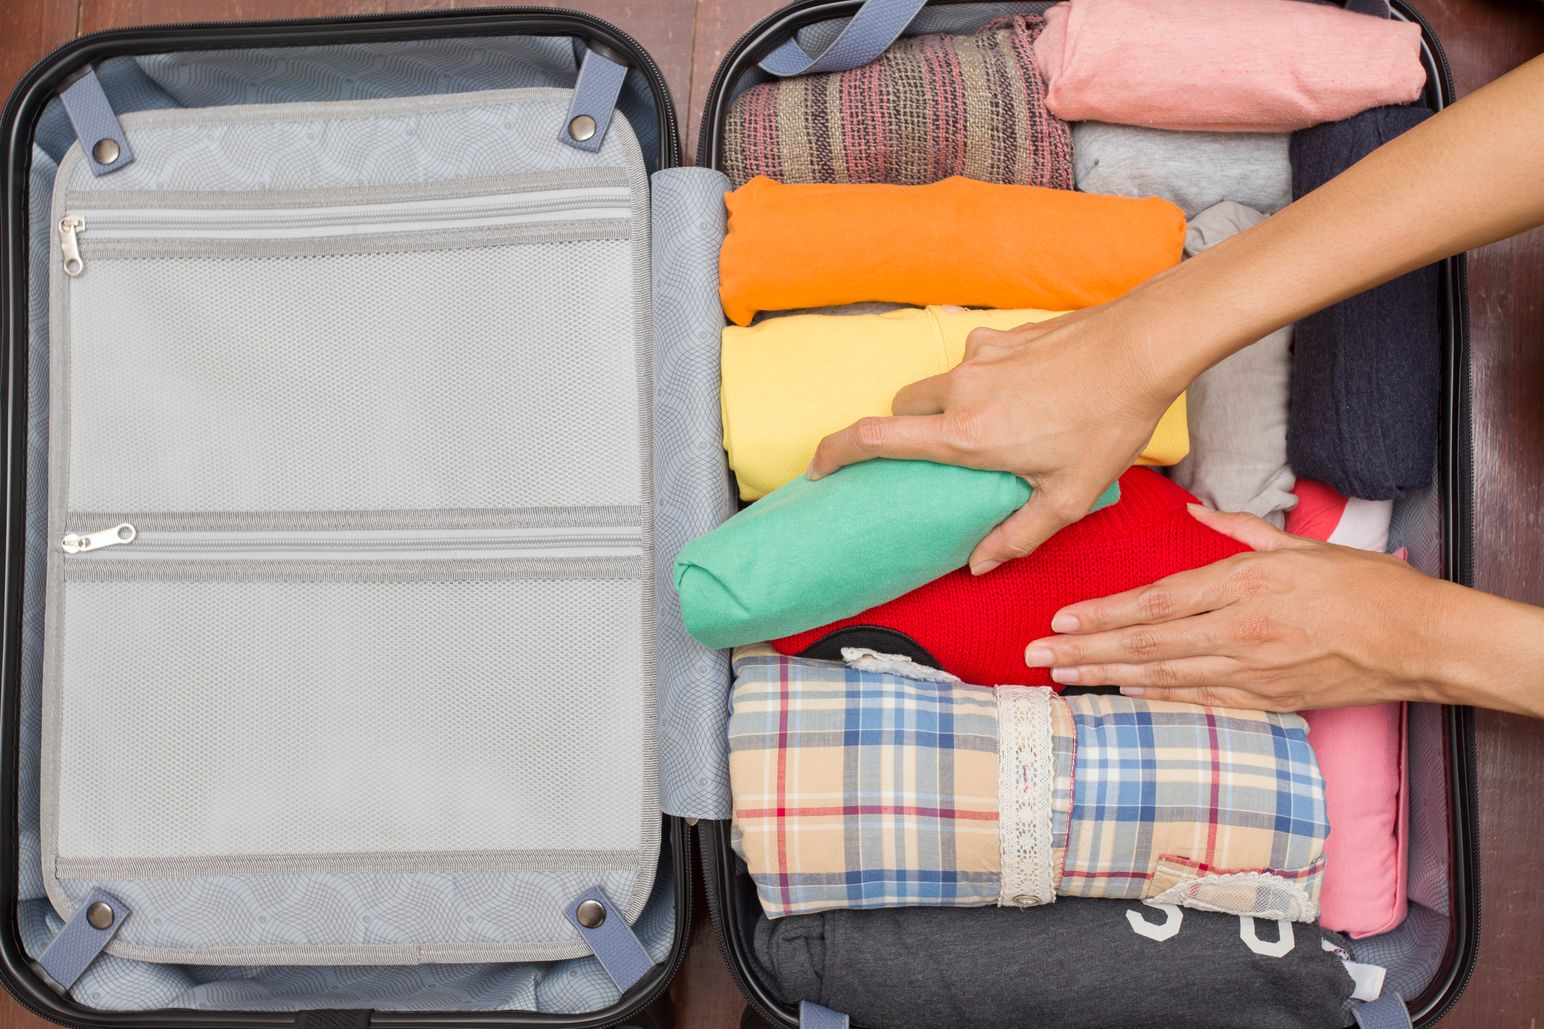 Rolling clothes into hand luggage - Flybe baggage allowances and how to beat extra charges